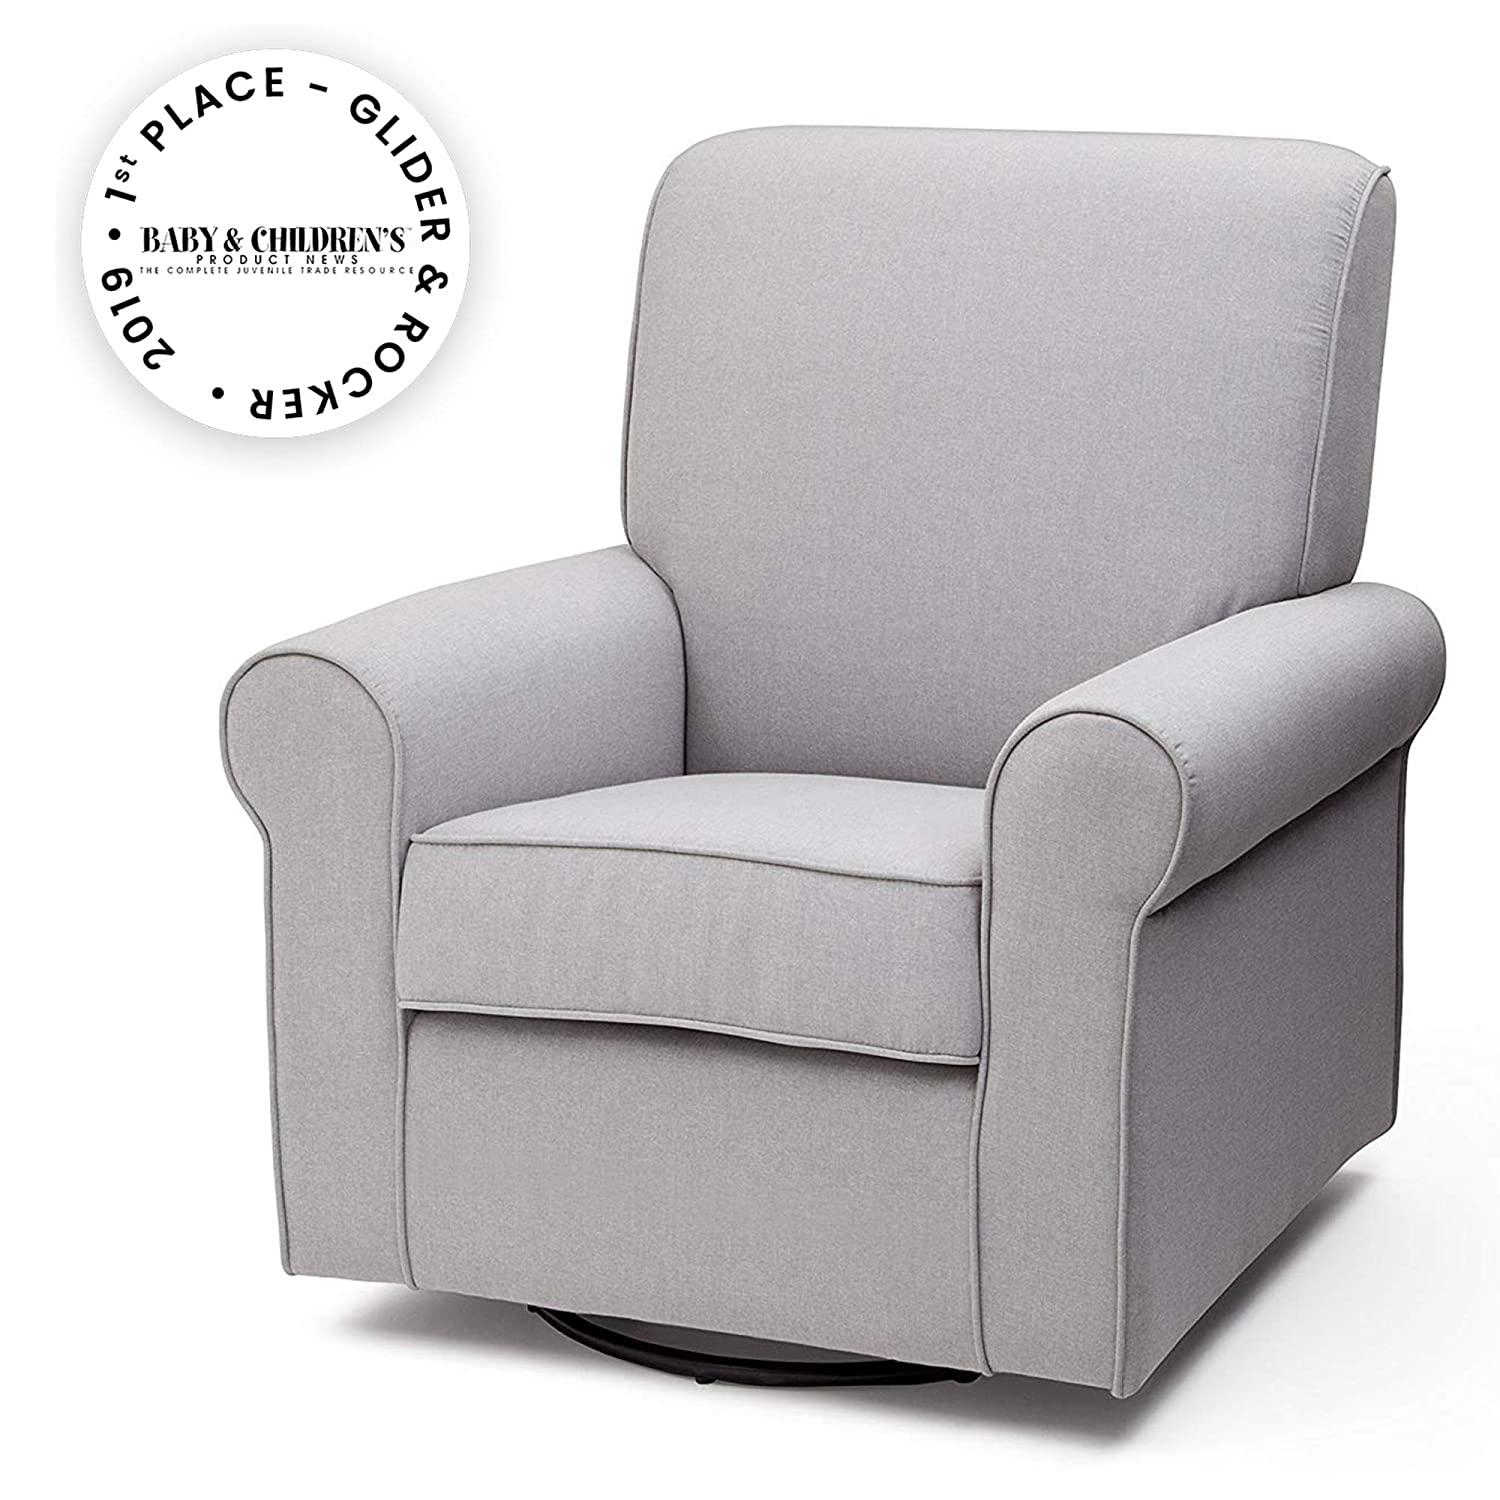 Groovy Delta Children Avery Upholstered Glider Swivel Rocker Chair Heather Grey Uwap Interior Chair Design Uwaporg